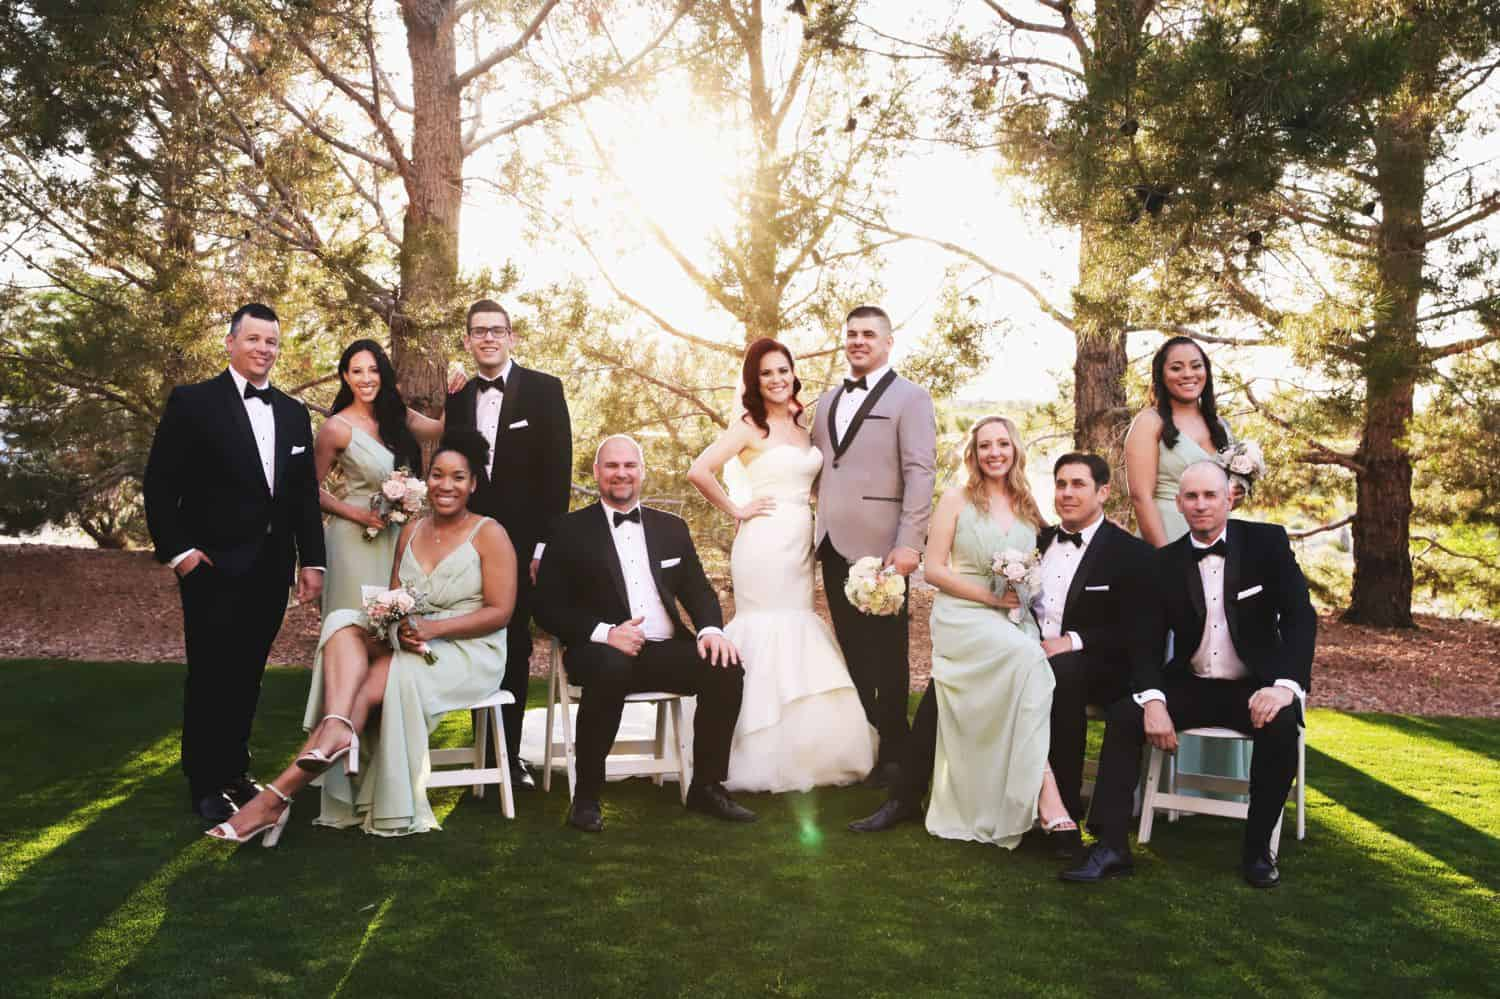 Bridesmaids and groomsmen stand and sit in a formal portrait pose in the grass at the edge of a sun-filled forest.